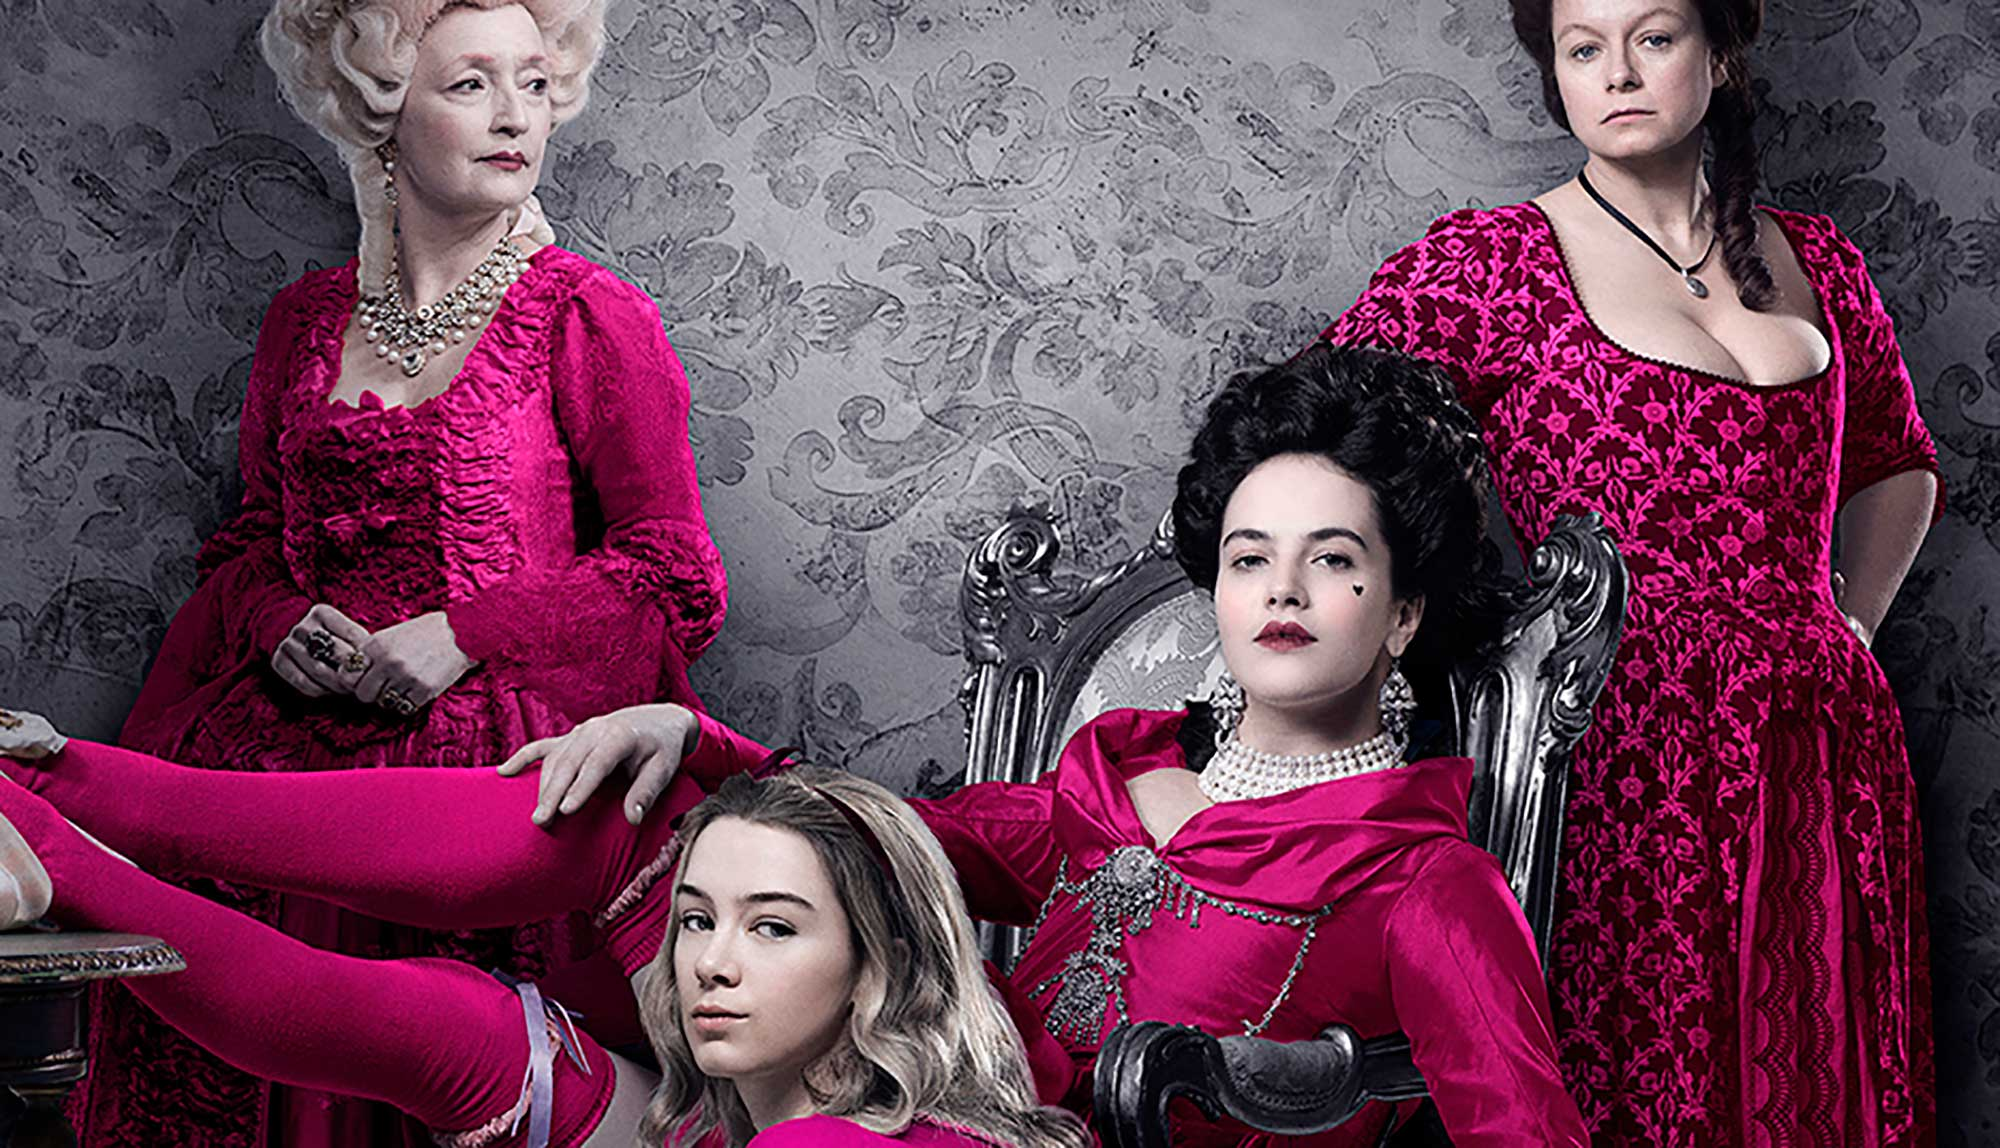 'Harlots' season two delved deeper into the feuds, betrayals, and carnal connections. Here are the reasons 'Harlots' is the most feminist show on TV.